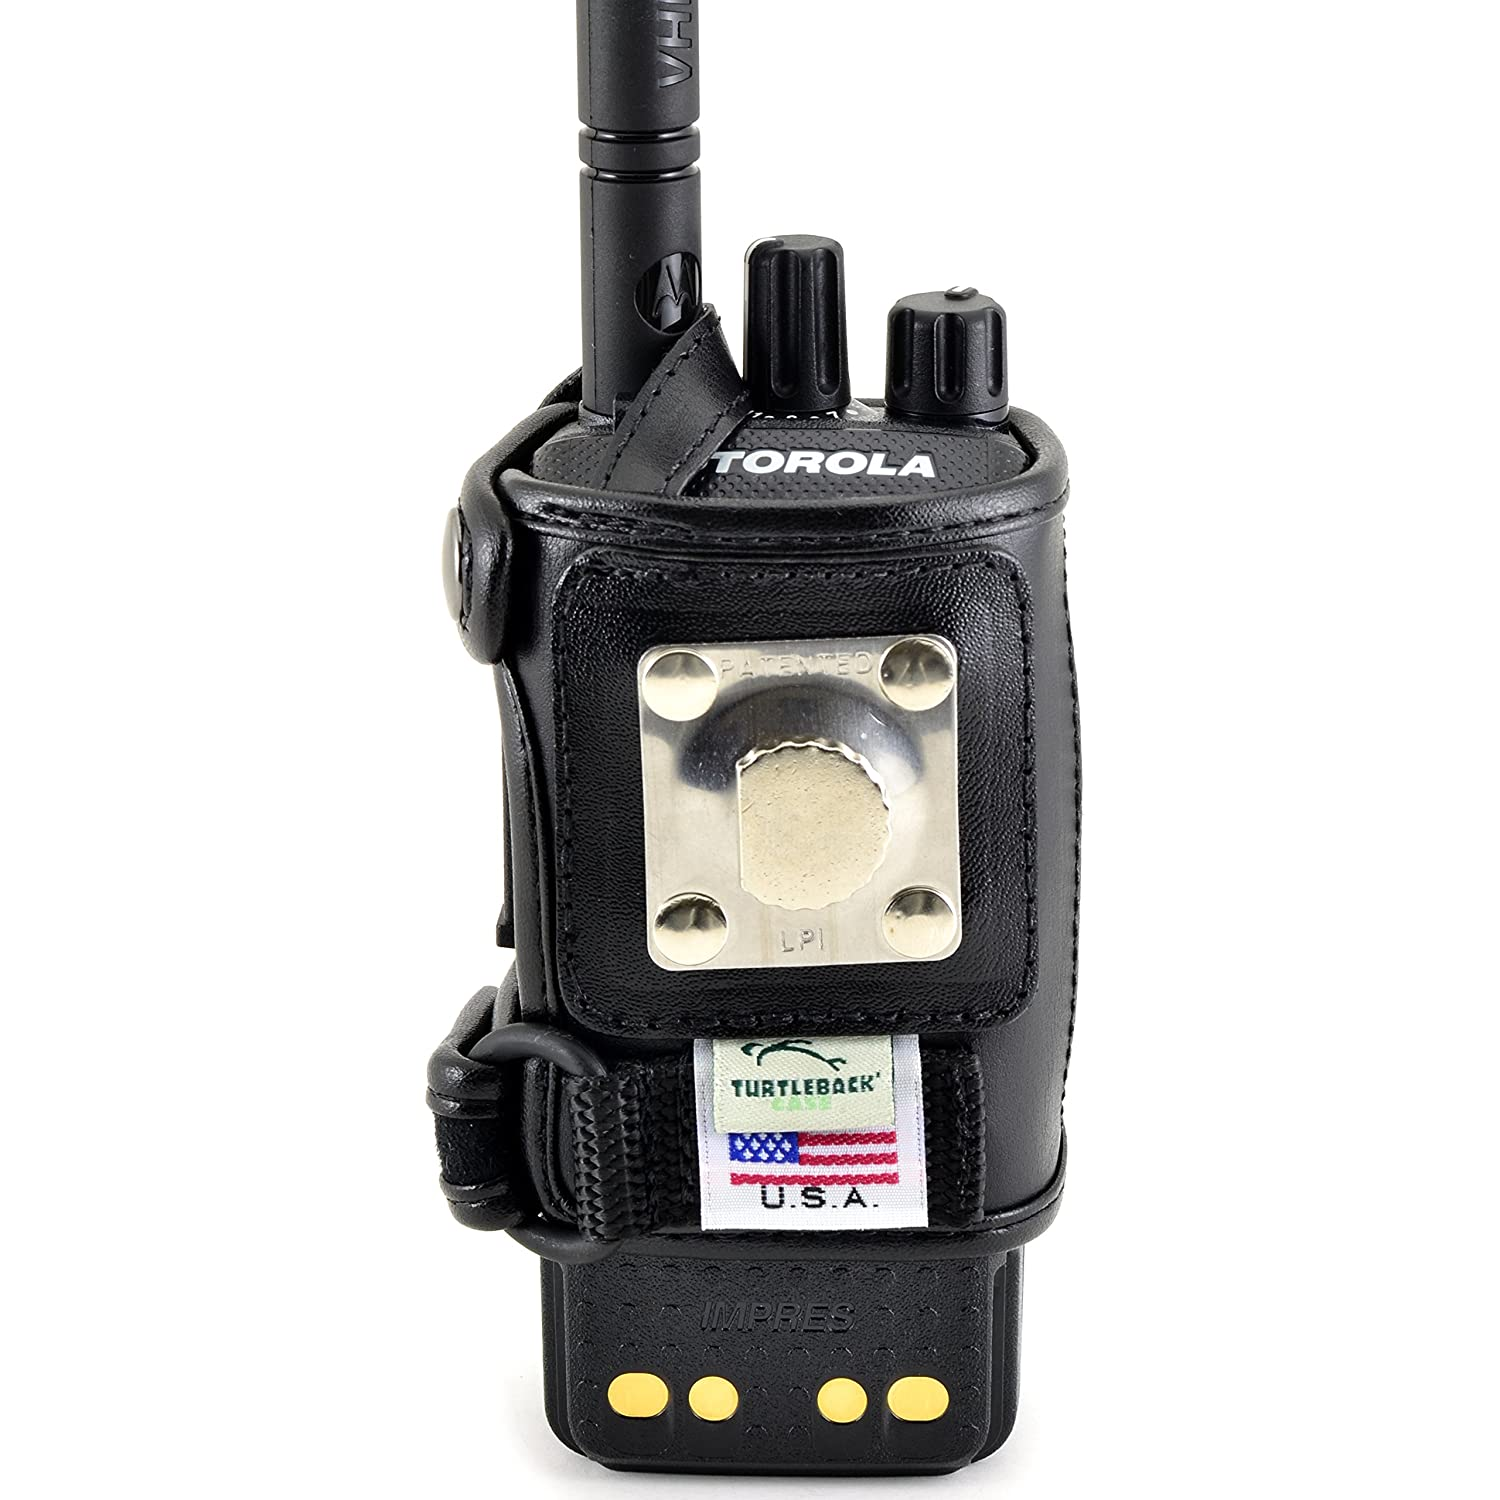 Radio holder motorola apx 6000 - Amazon Com Turtleback Motorola Xpr 3500 Belt Carry Holder Case Black Leather Duty Belt Holster With Heavy Duty Rotating Belt Clip Made In Usa Cell